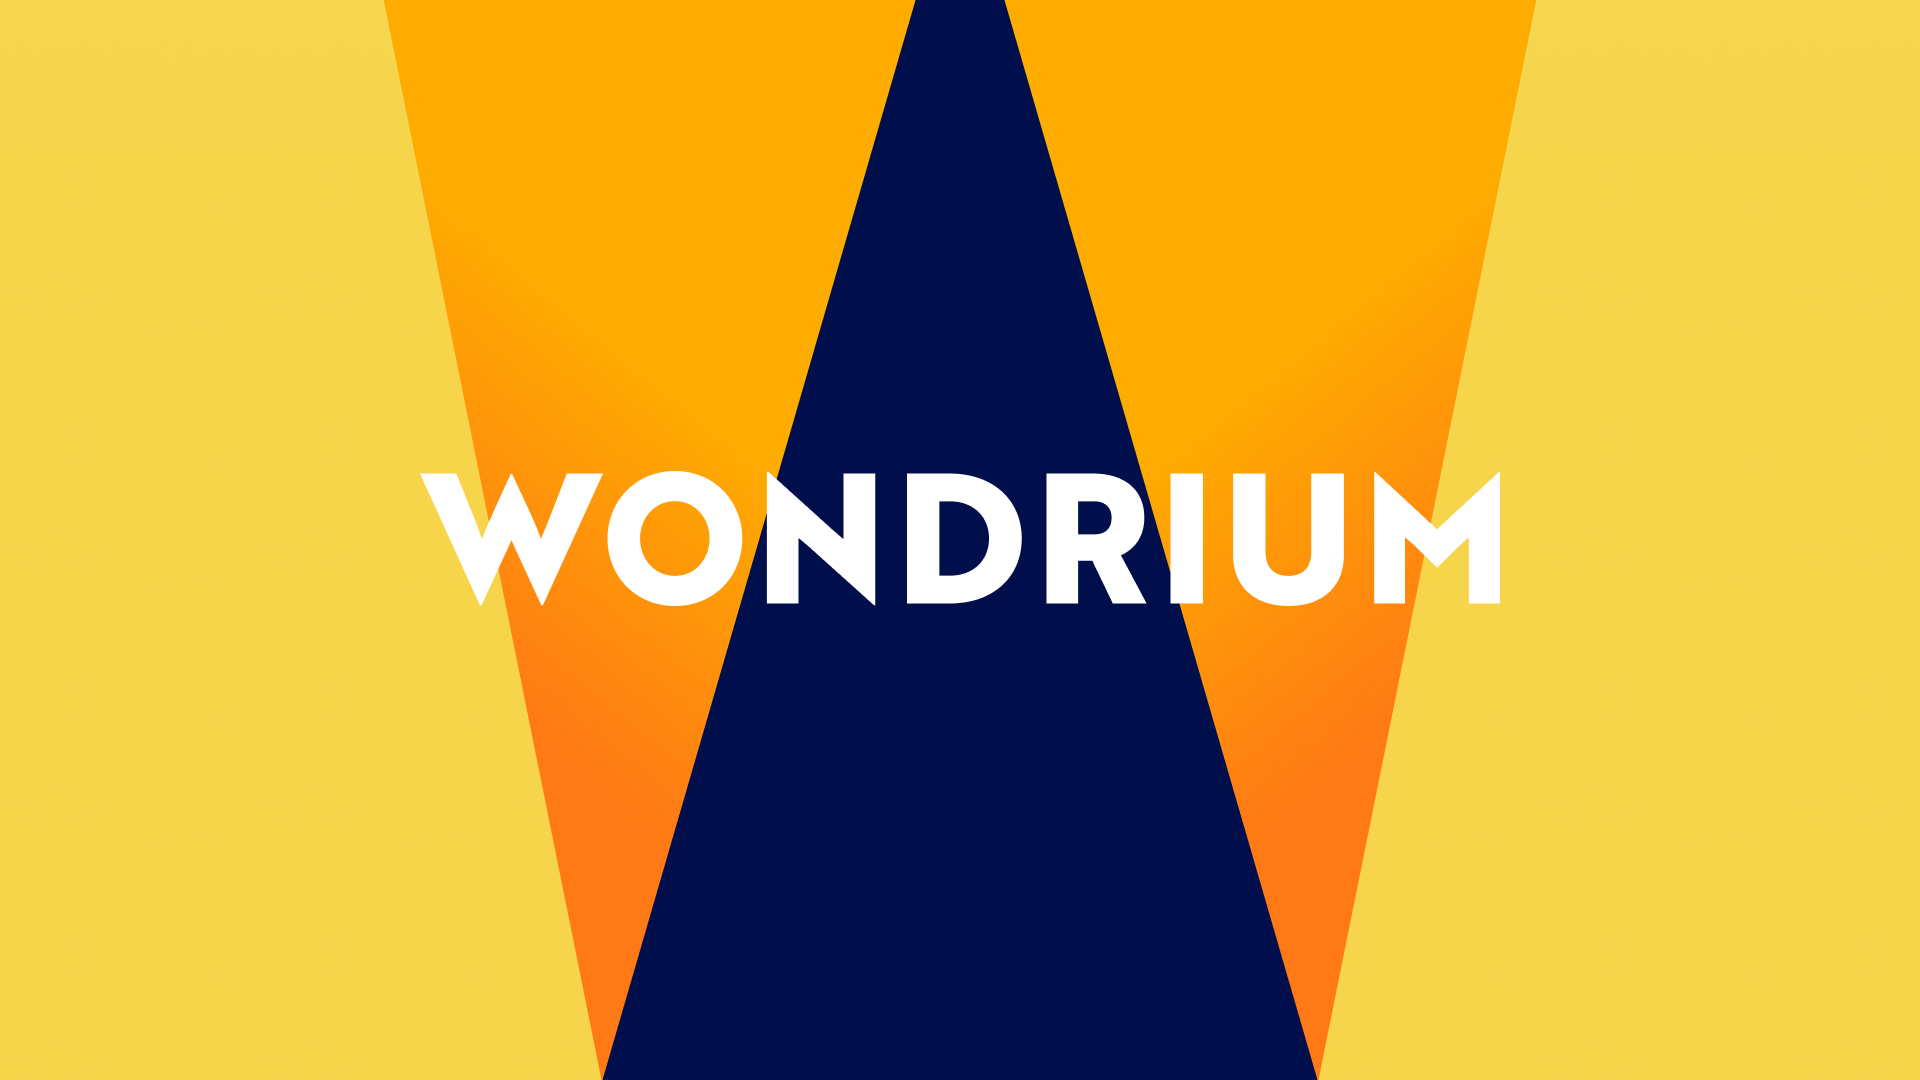 Wondrium logotype in the foreground with the Wondrium Logomark in the background